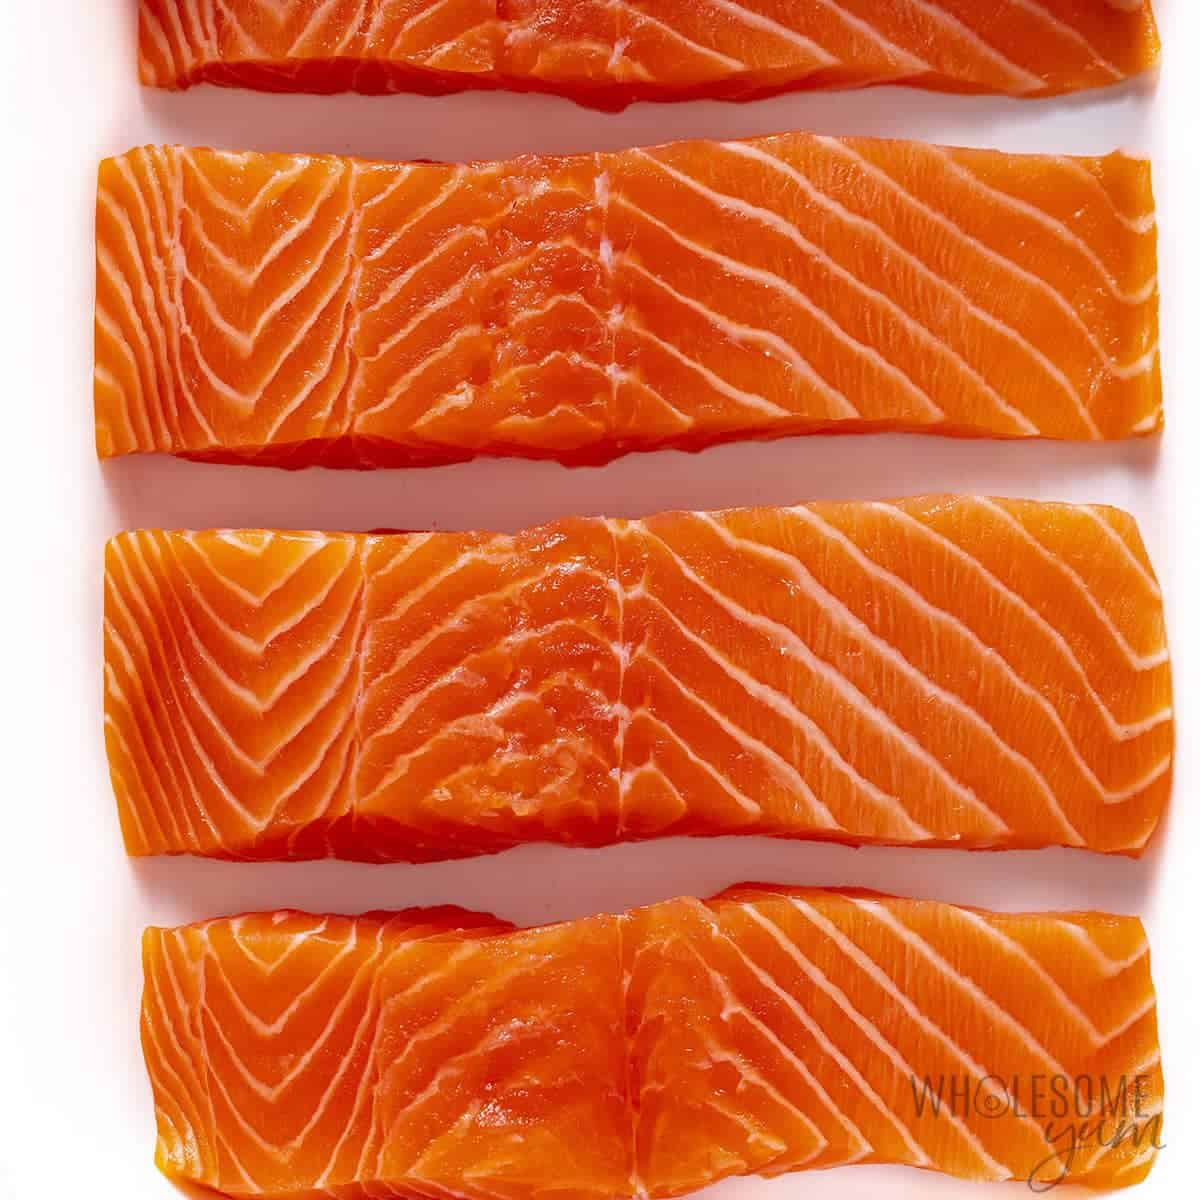 The best salmon for baking